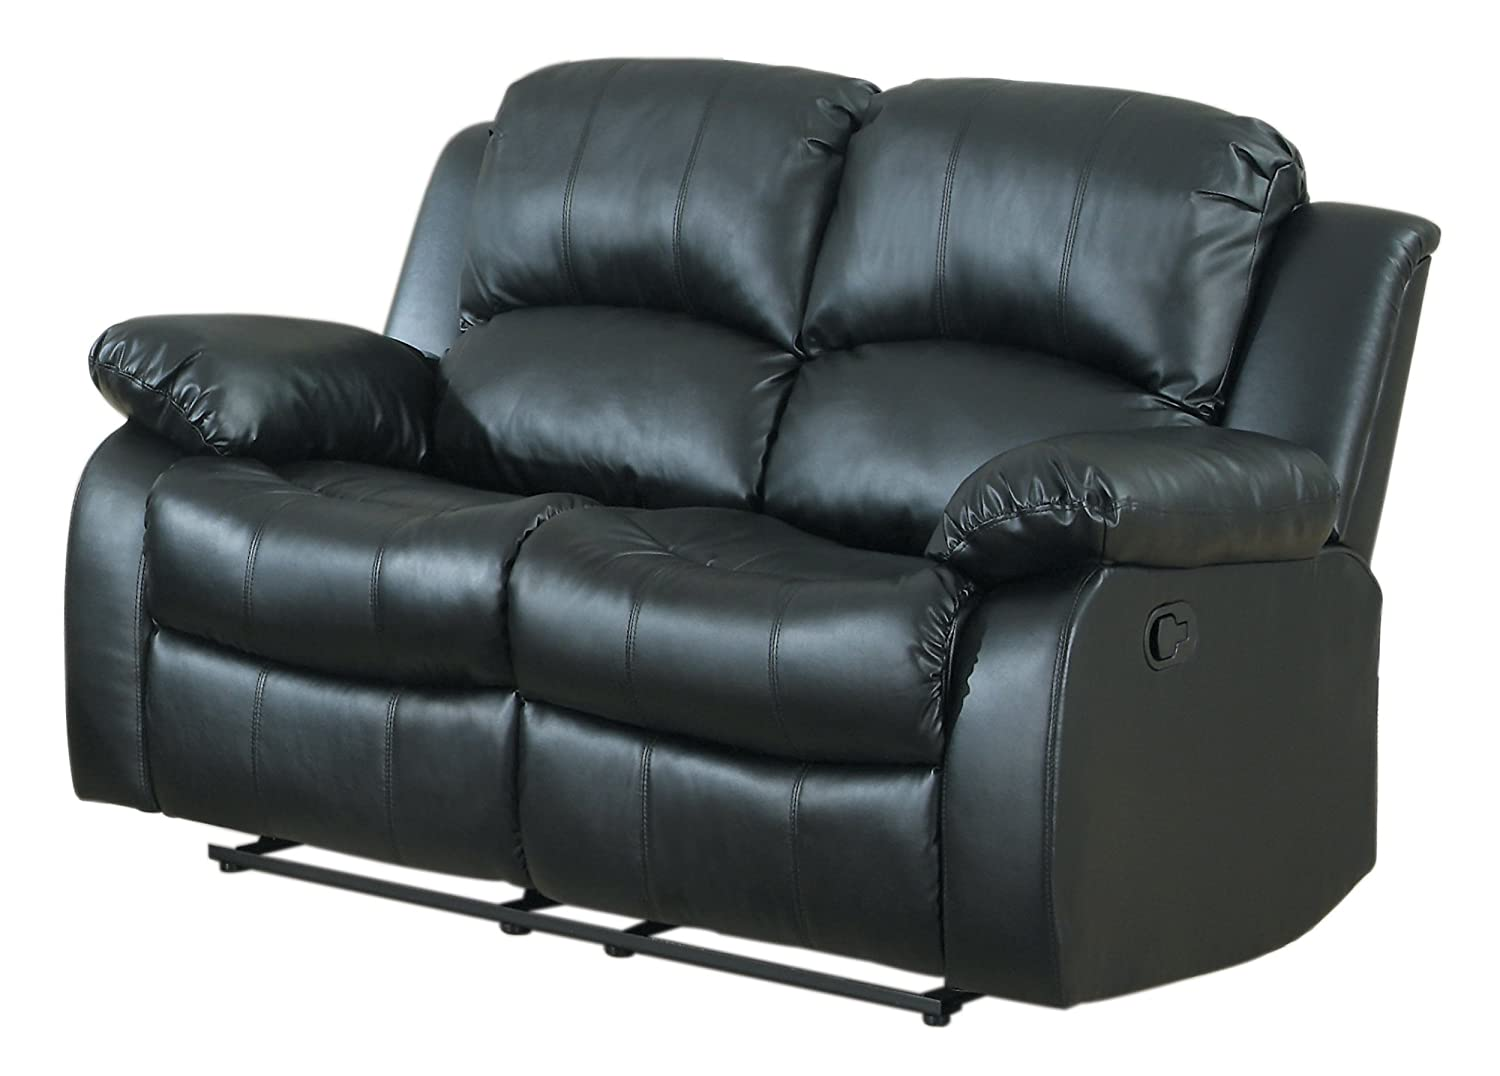 Homelegance Double Reclining Loveseat - Black Bonded Leather